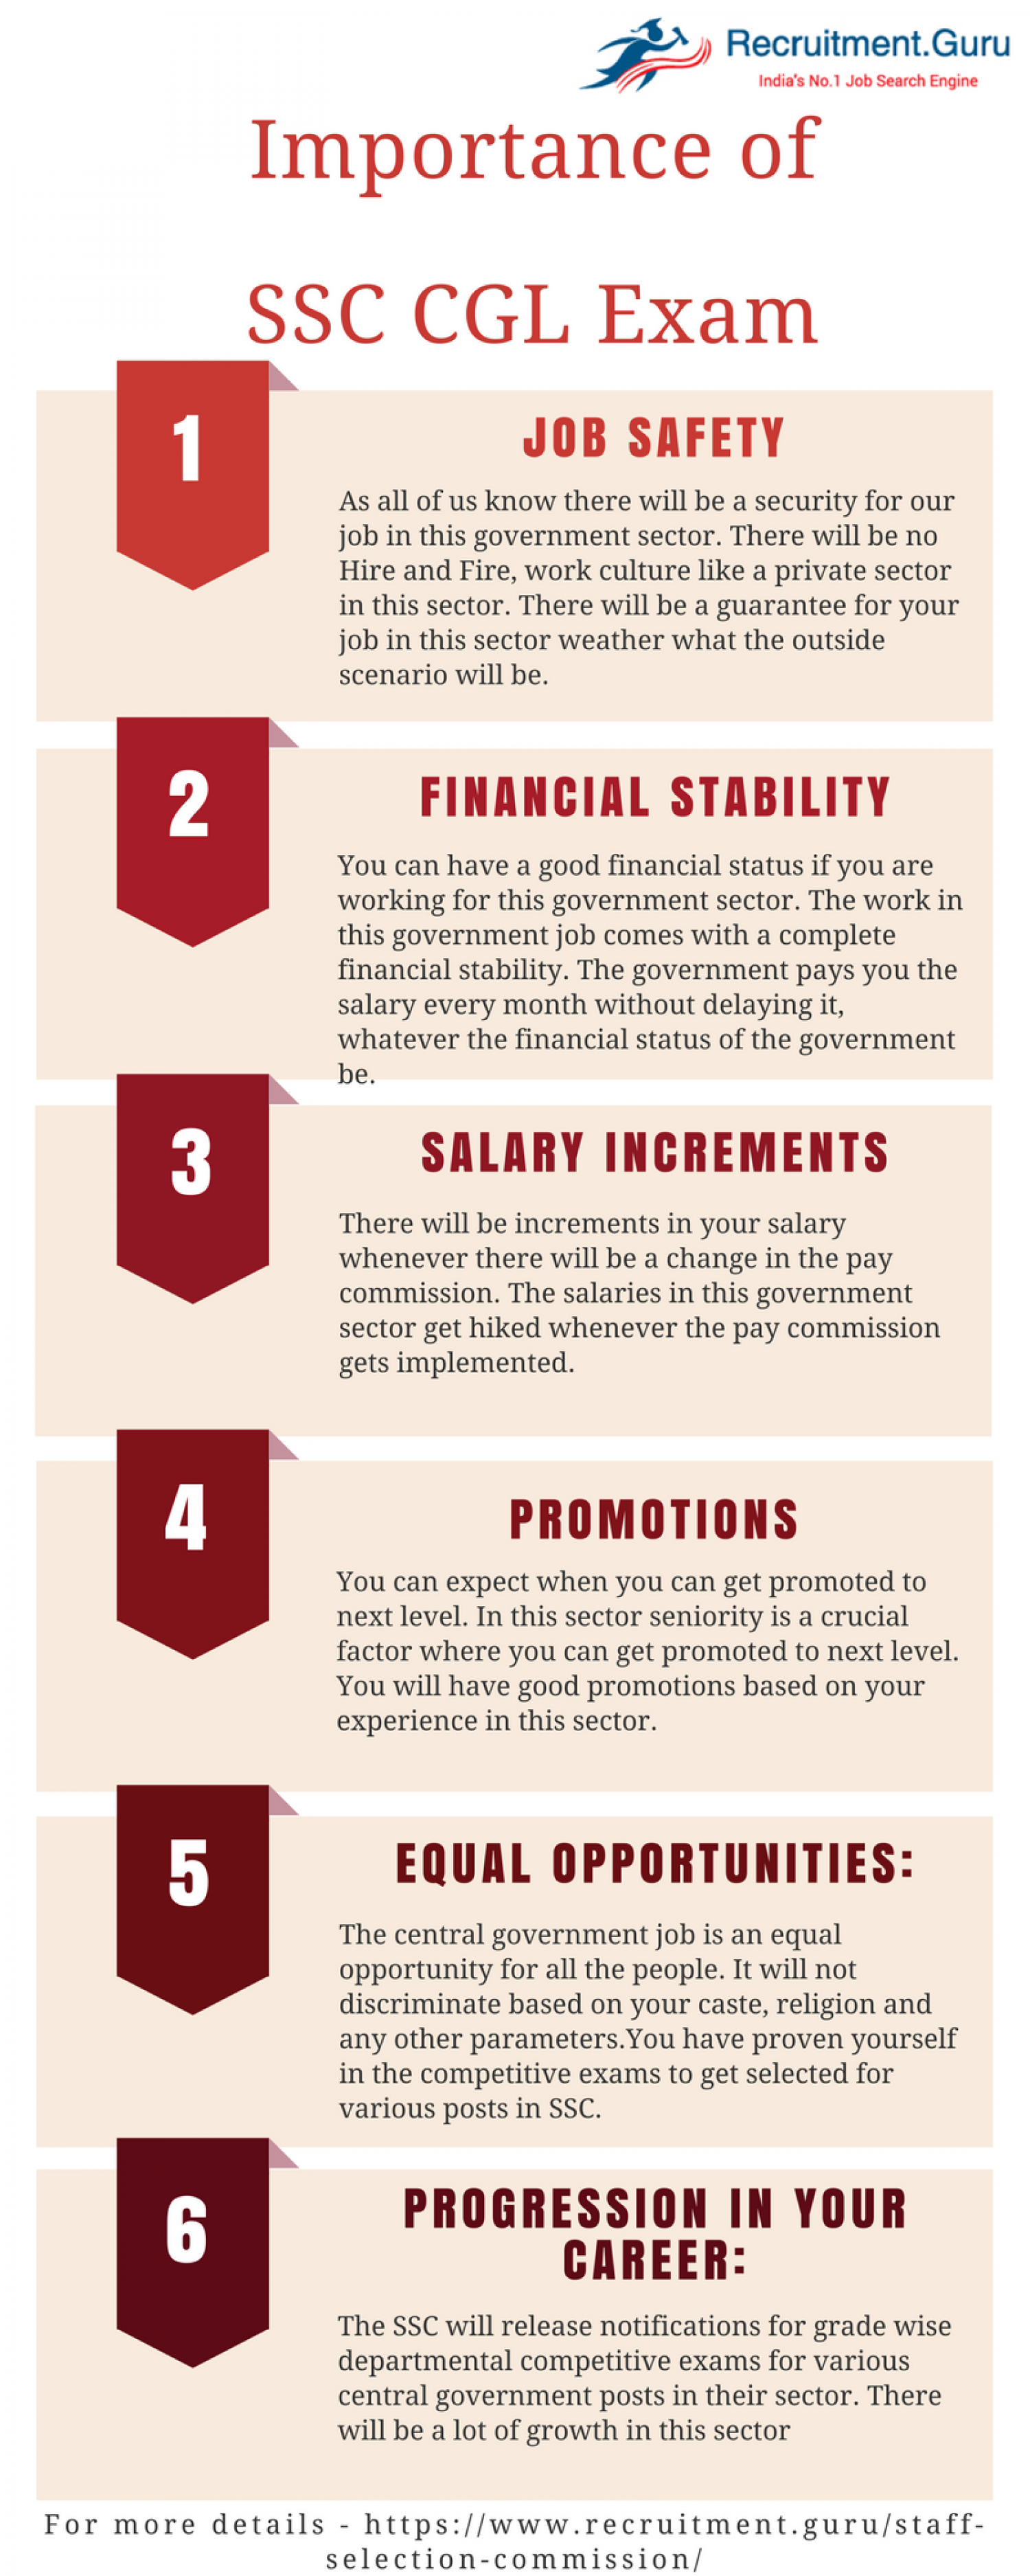 Importance of SSC CGL Infographic